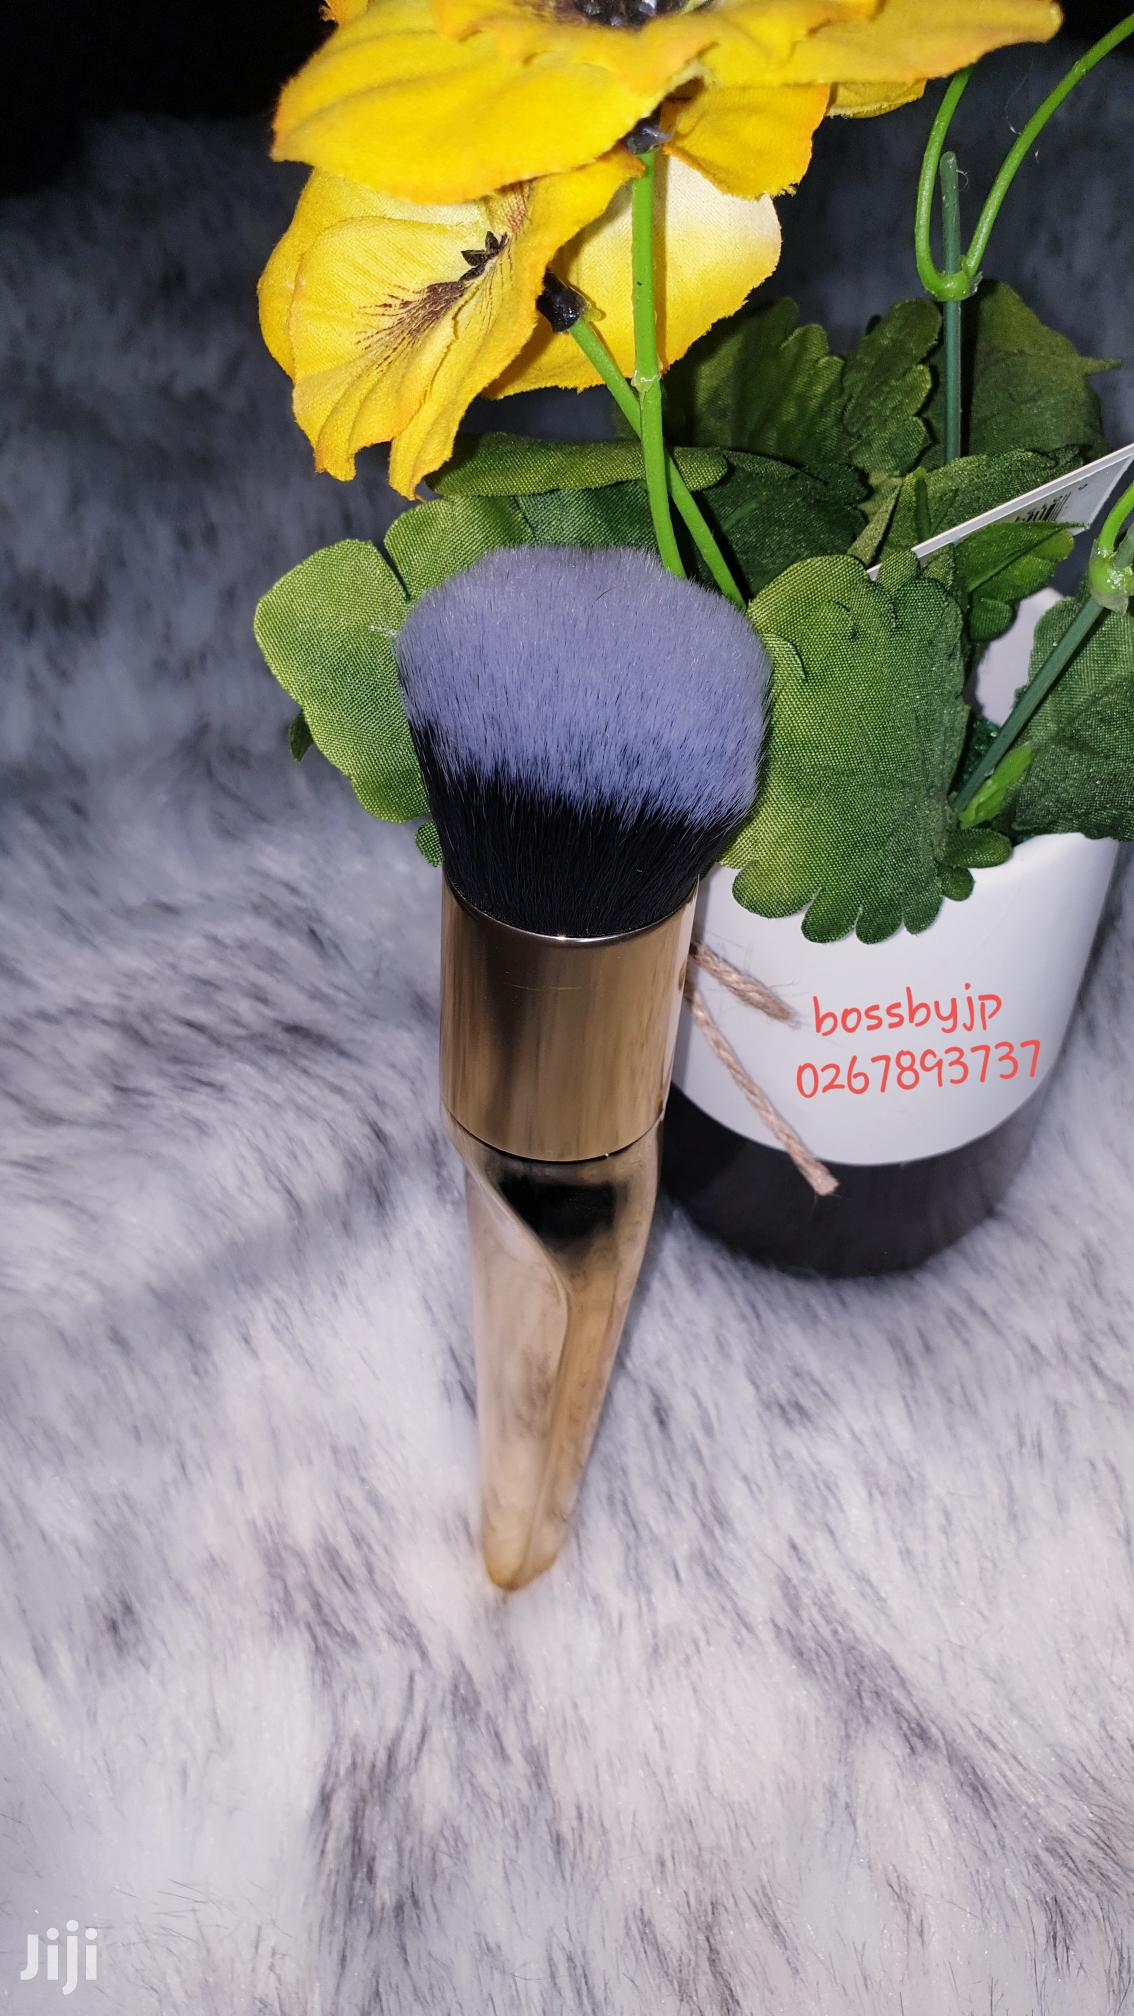 Blush Makeup Brush for Sale